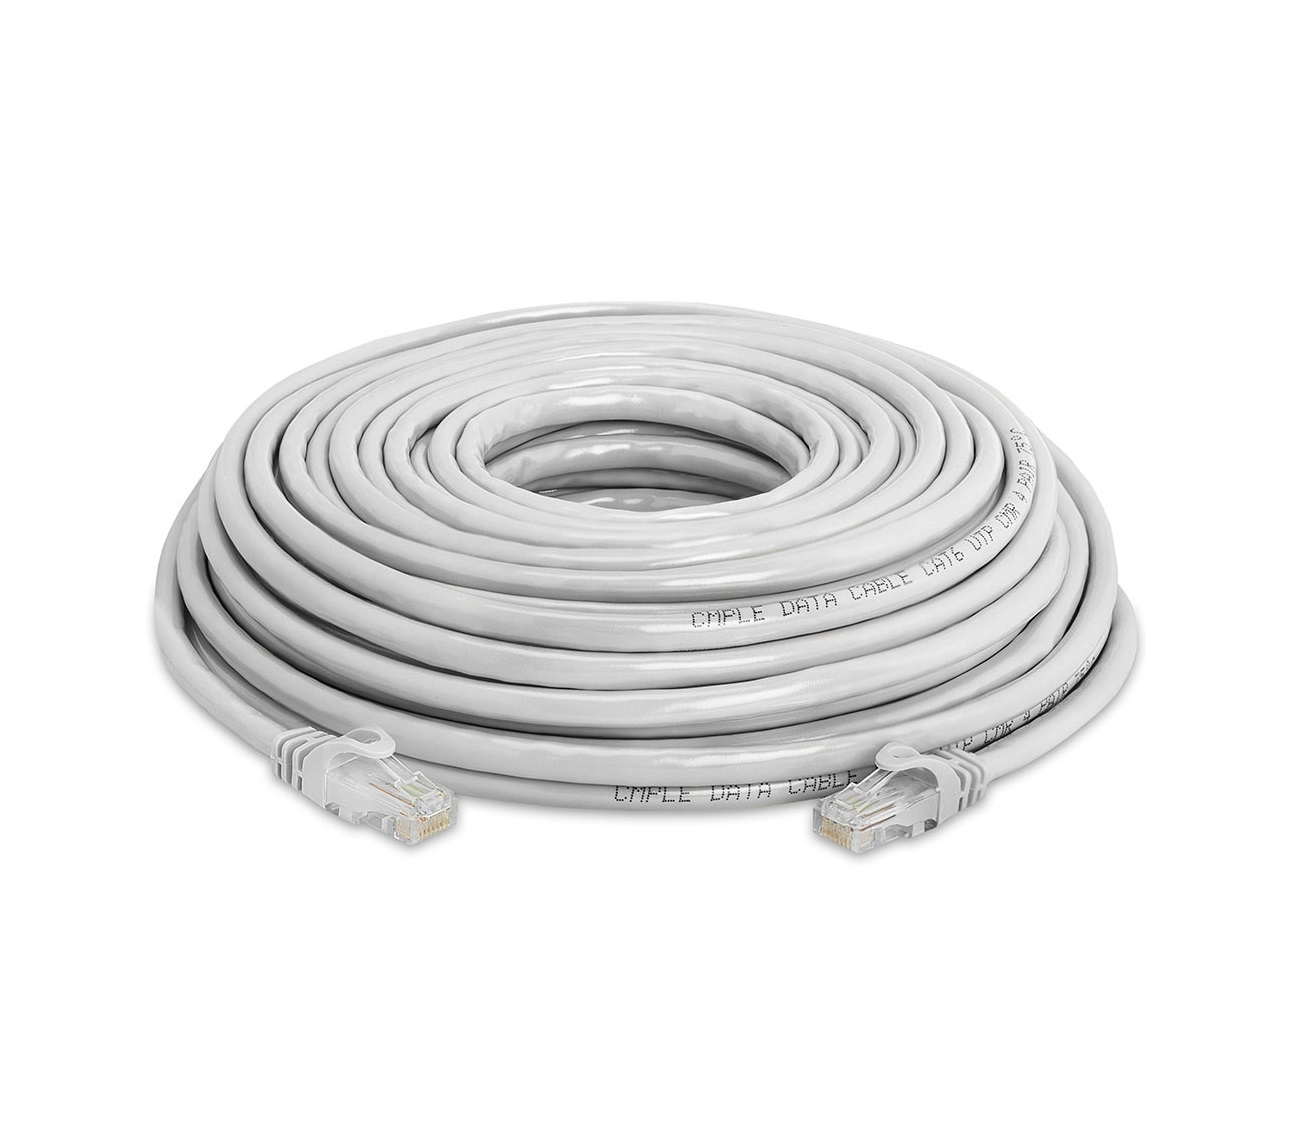 Cat6 cable for IP security cameras